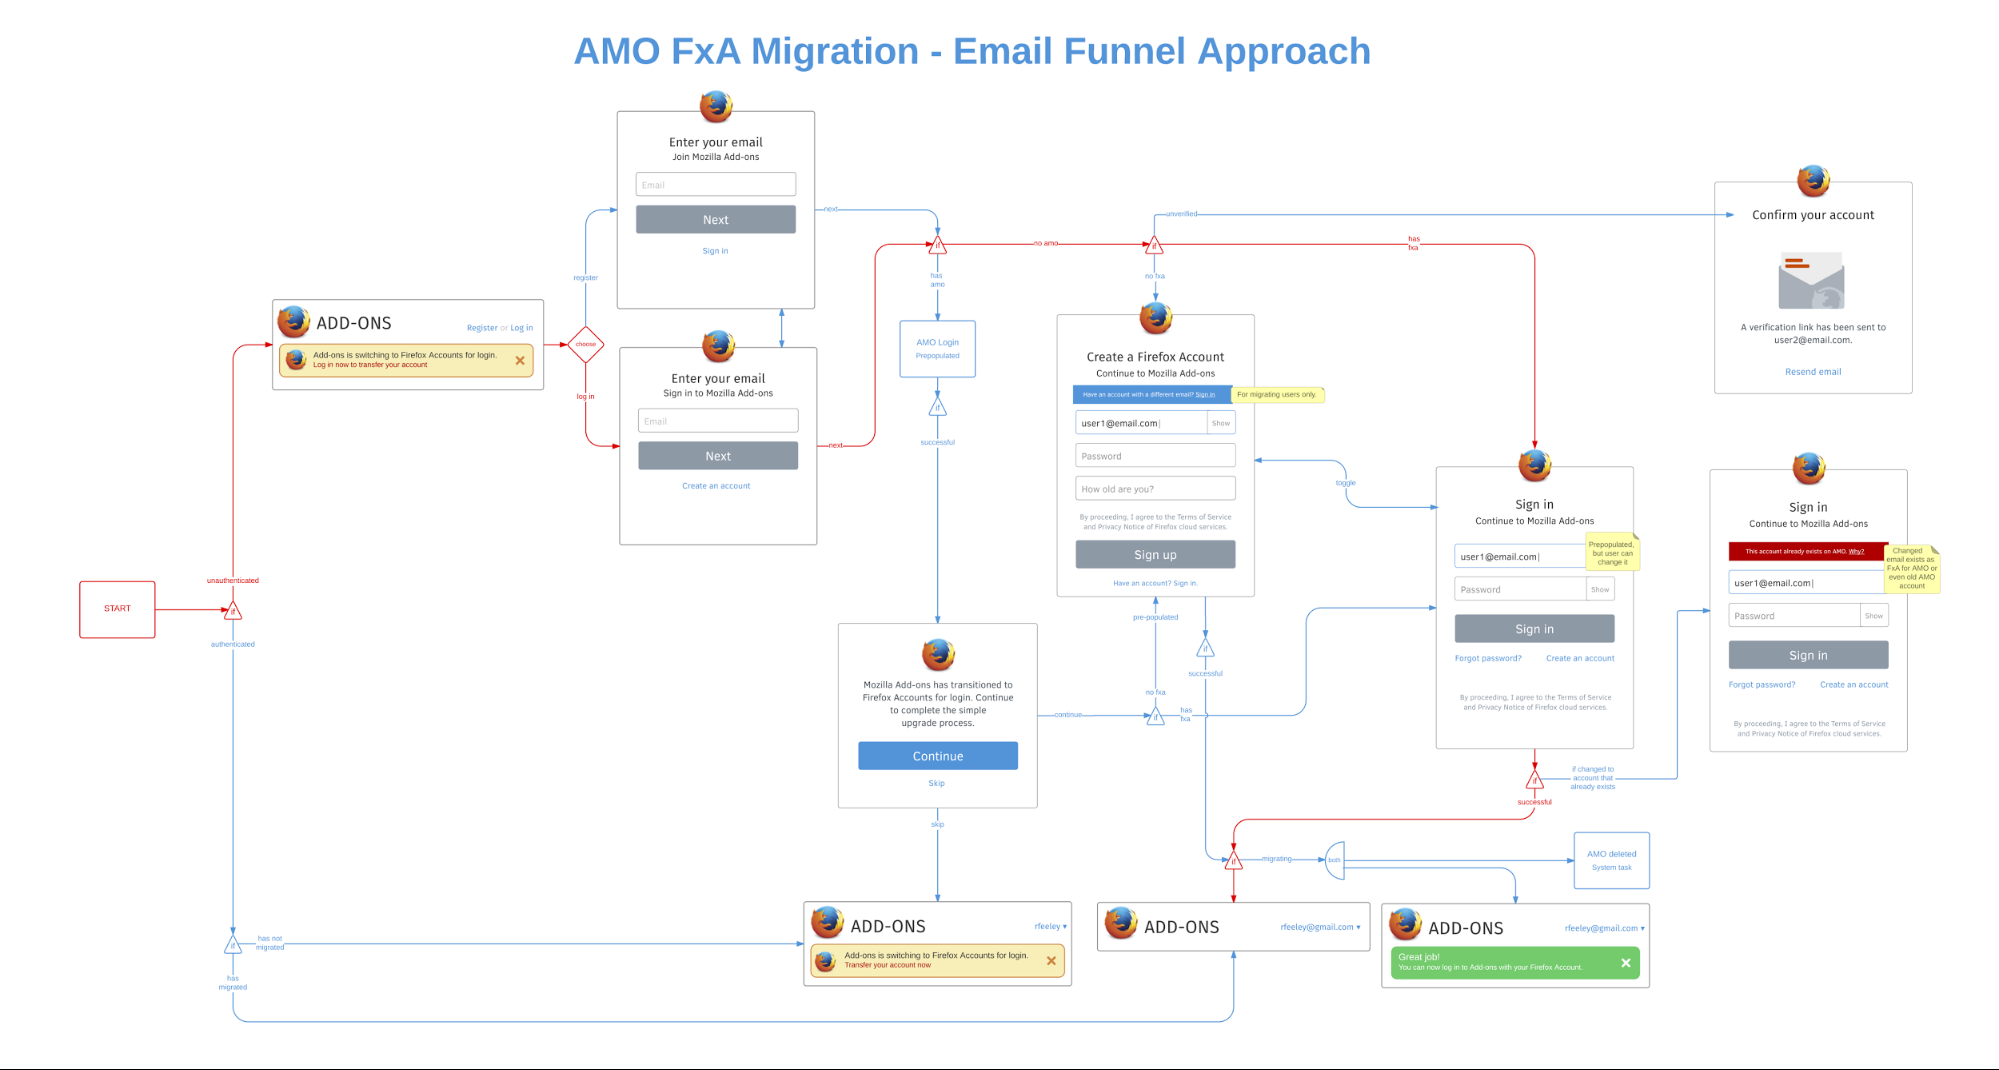 email funnel user flow